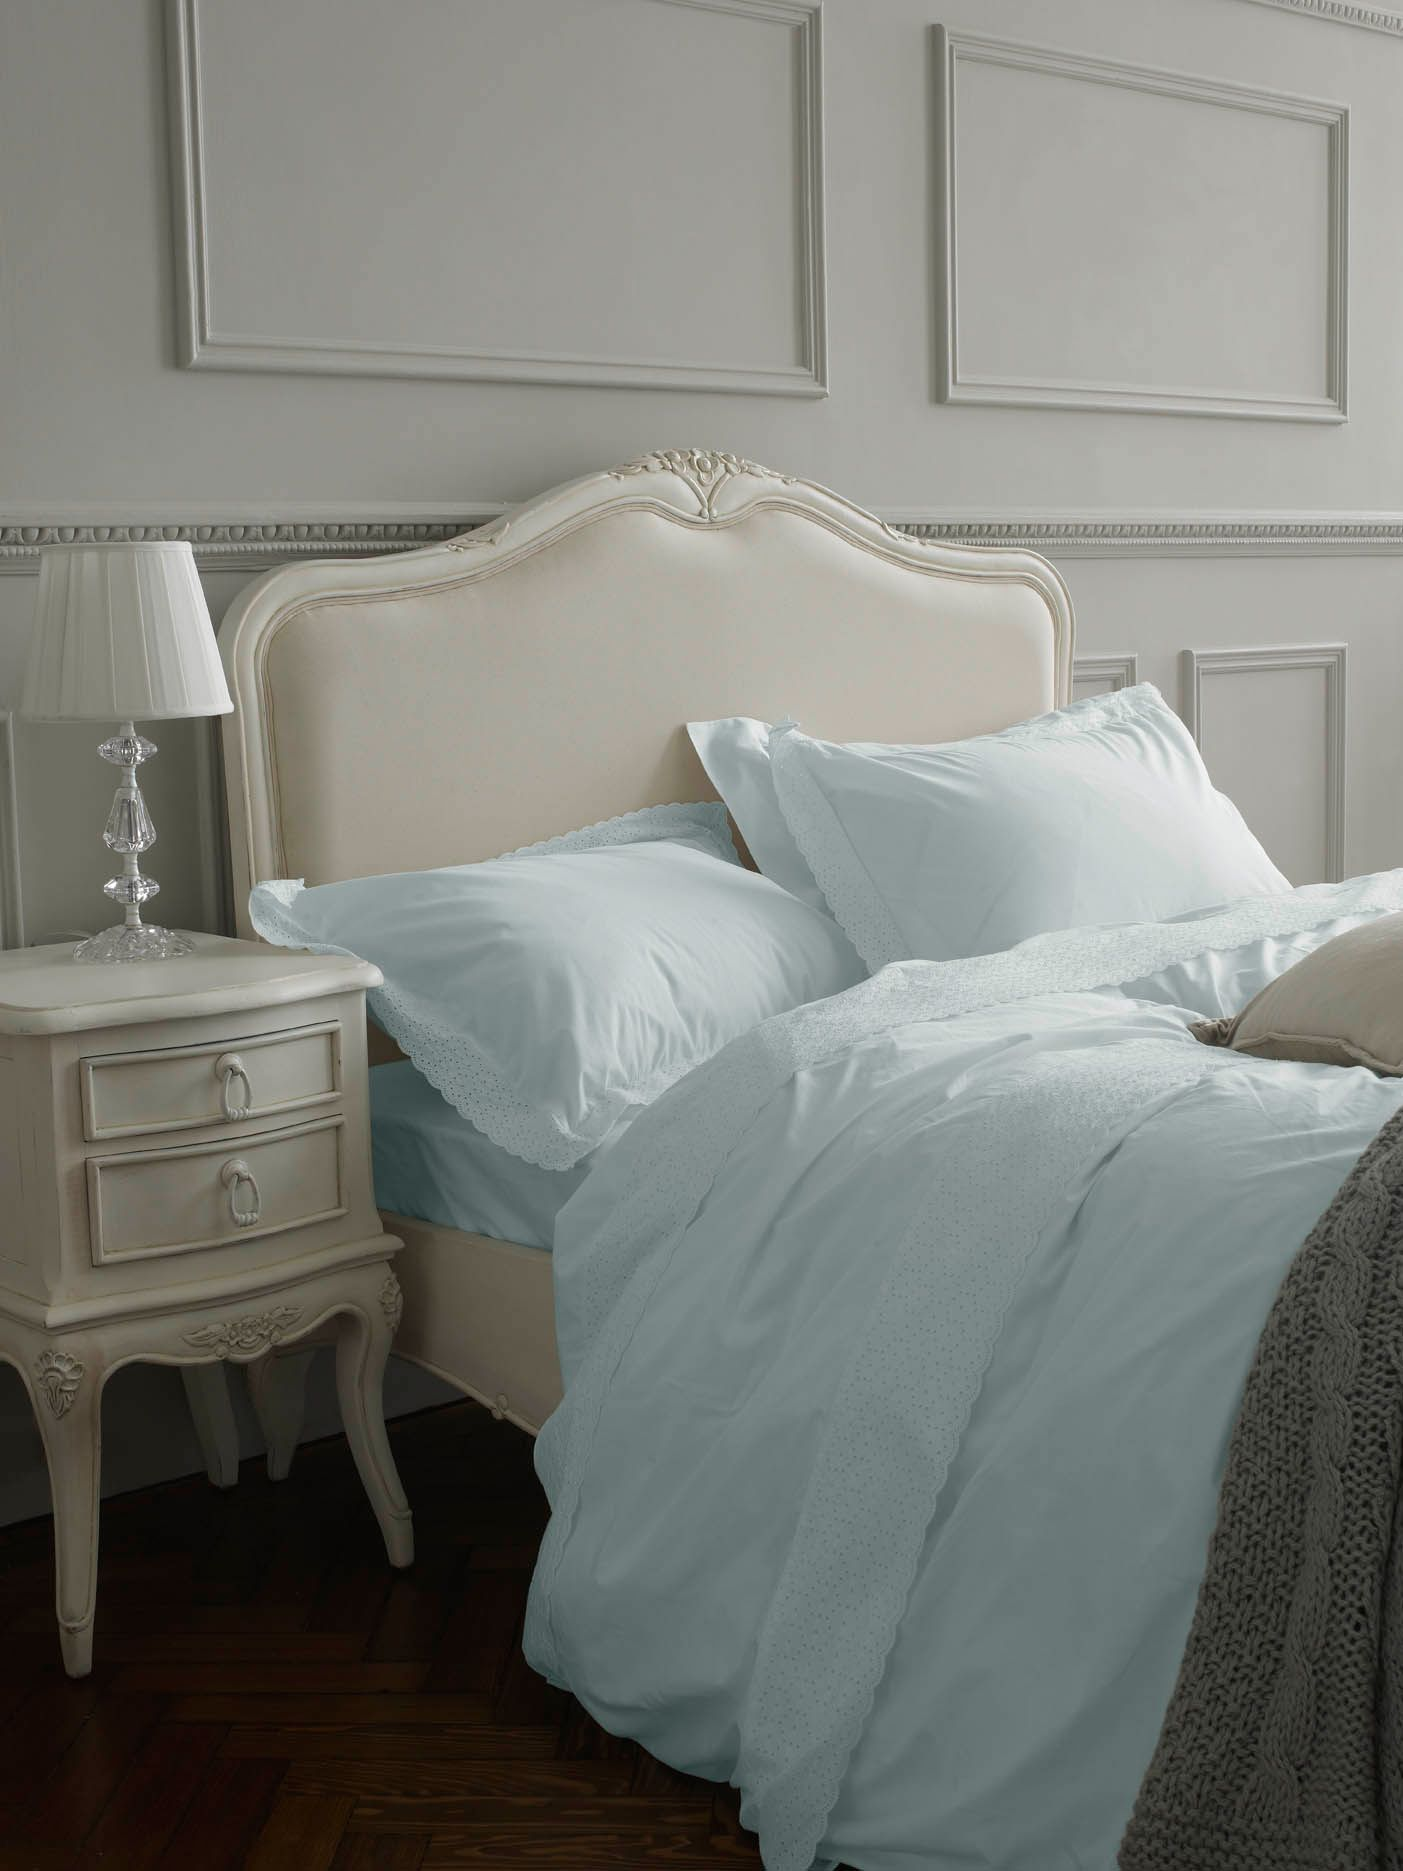 Embroidered Frill bed linen in duck egg